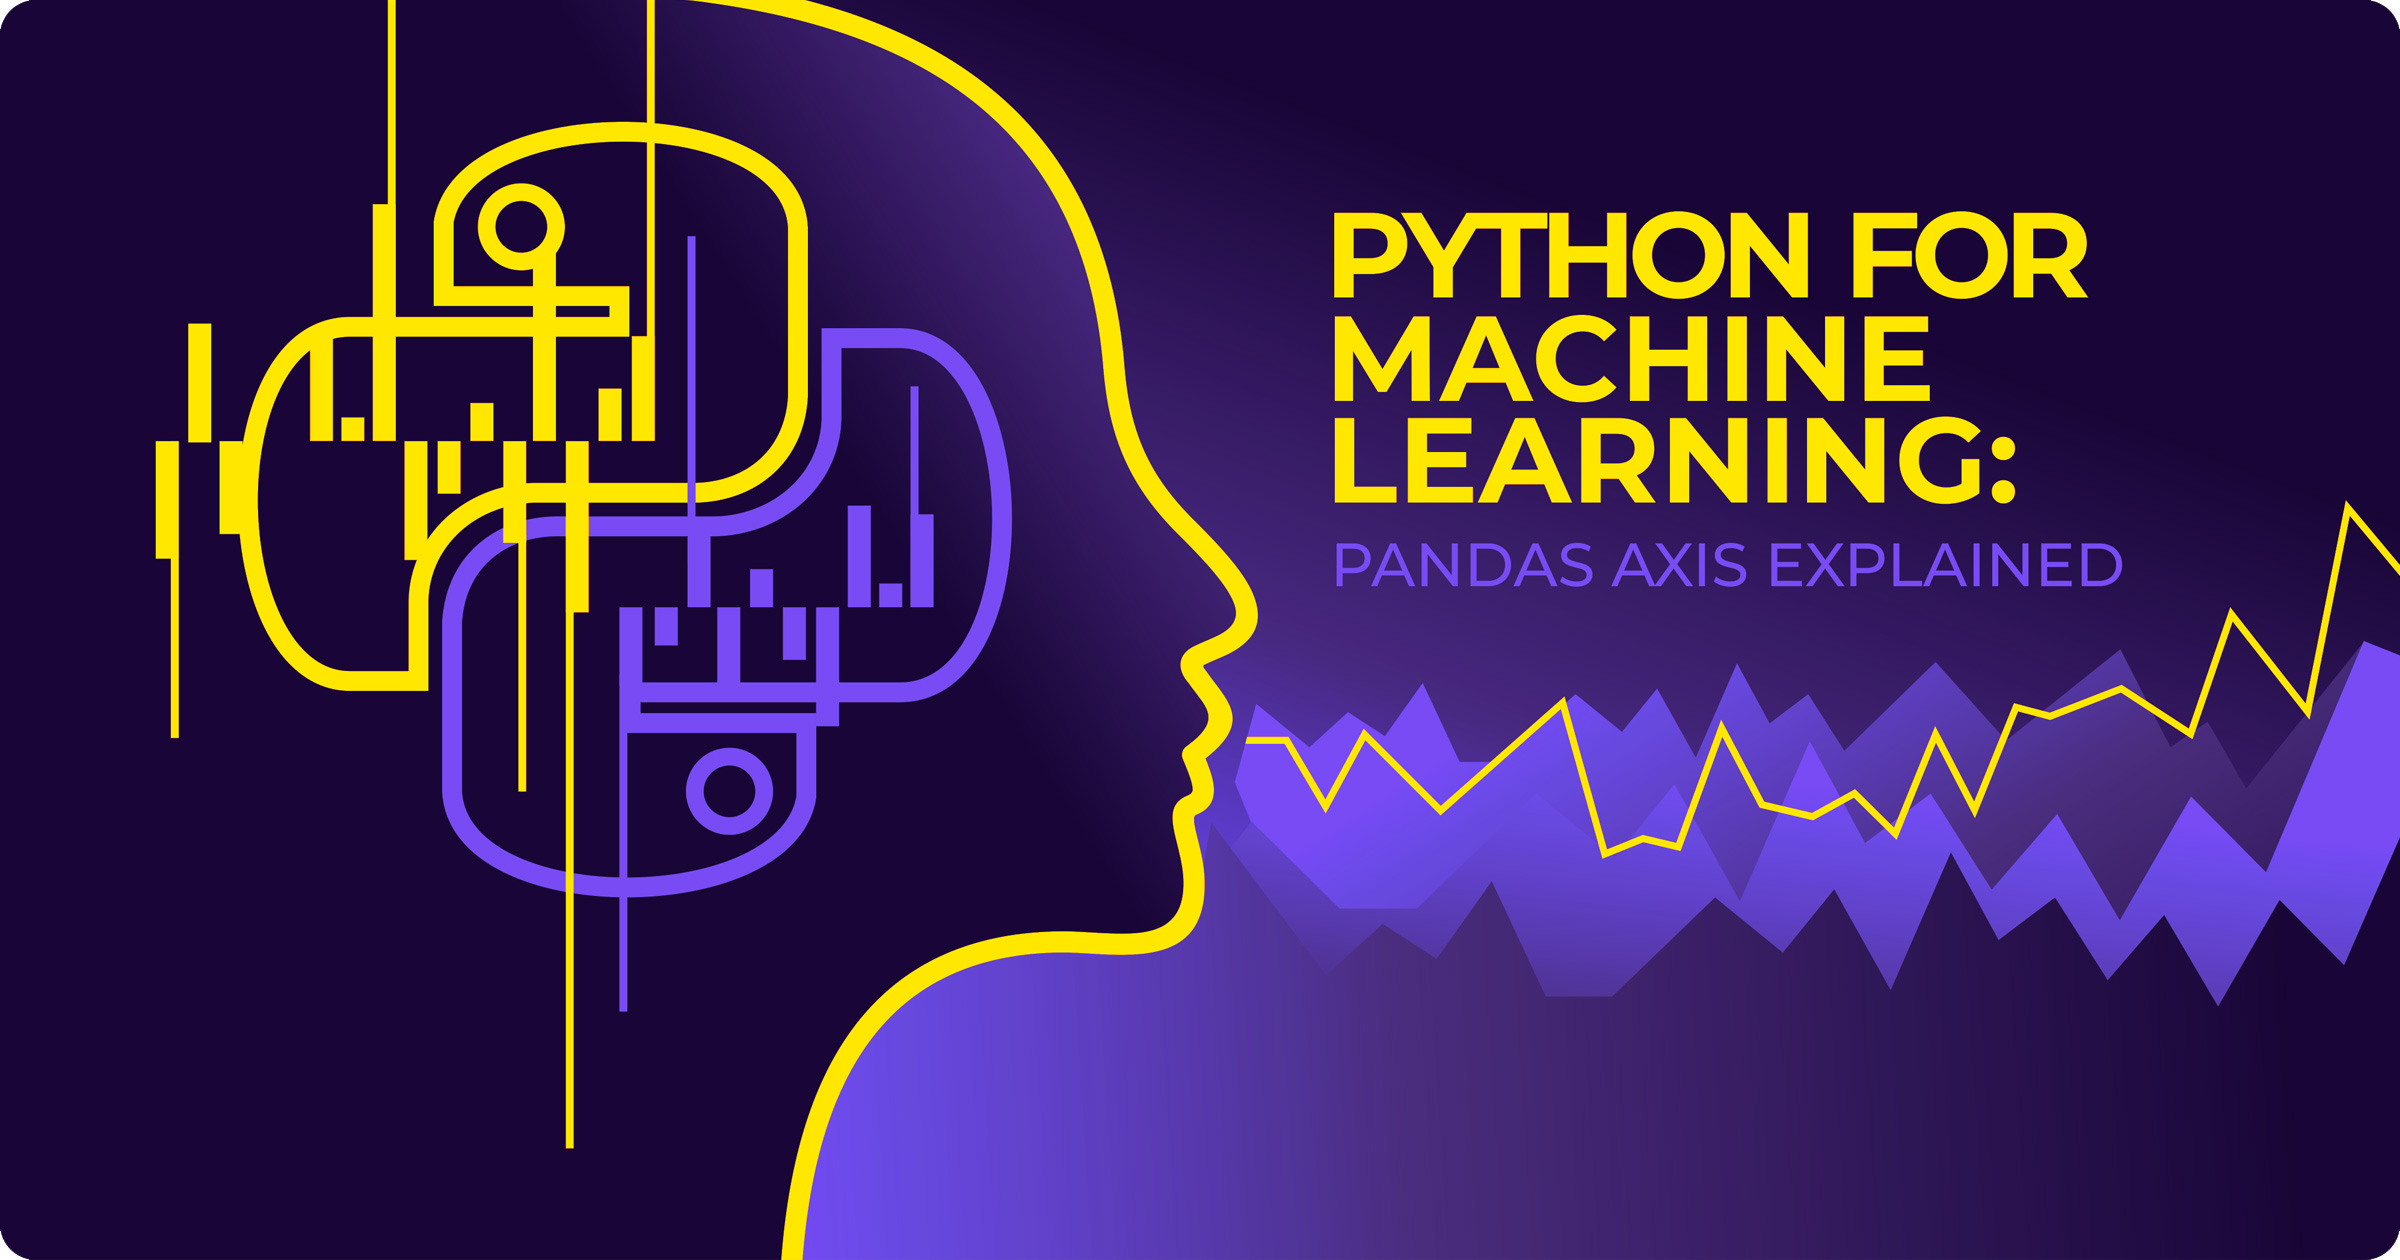 Python for Machine Learning: Pandas Axis Explained